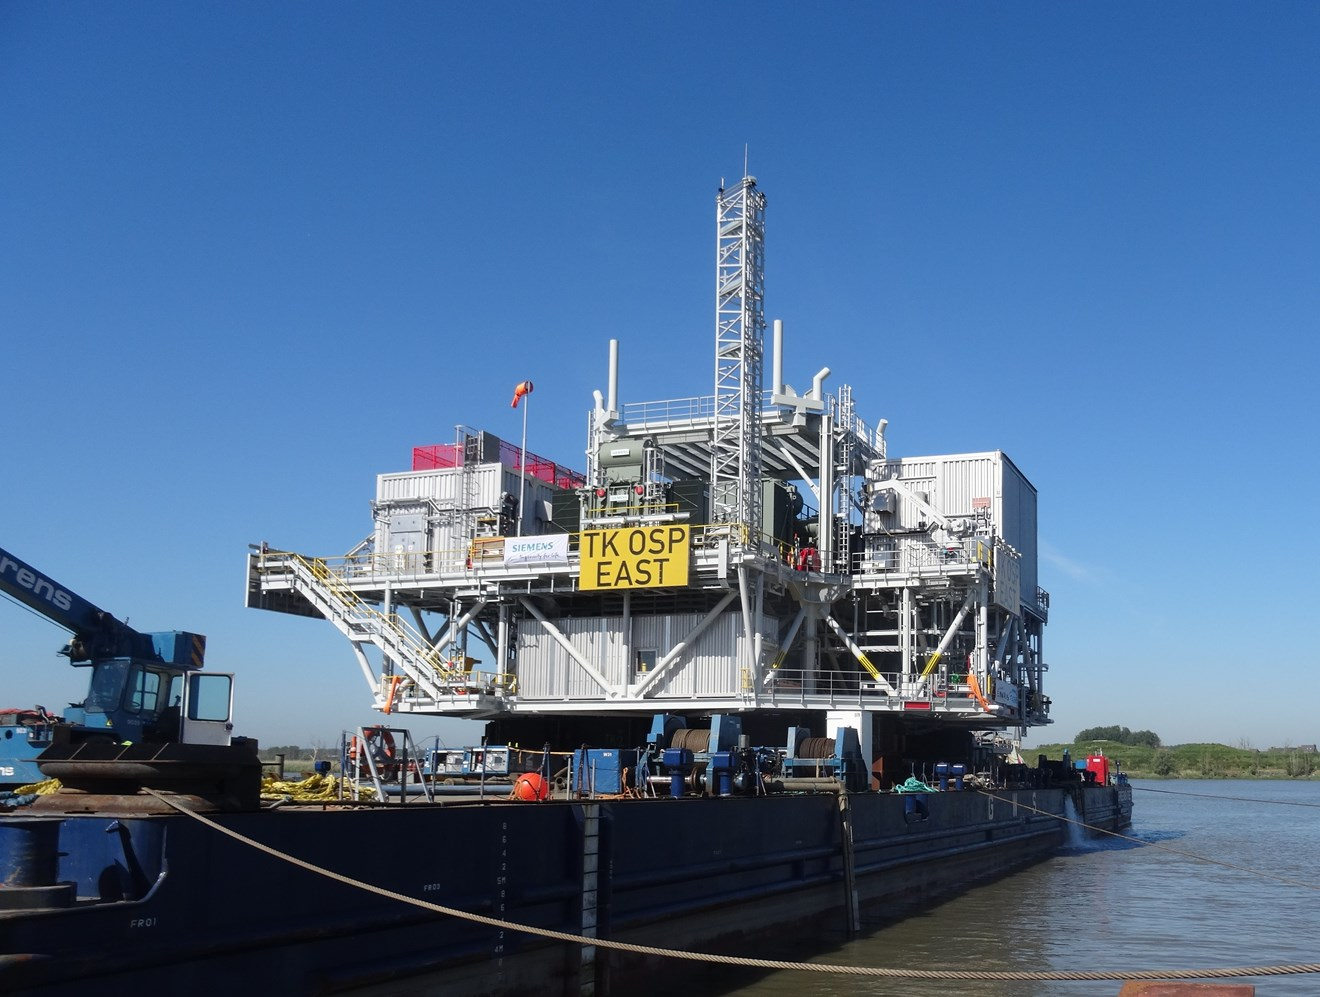 Major milestone in sight for Triton Knoll offshore wind farm project: TK OTM East